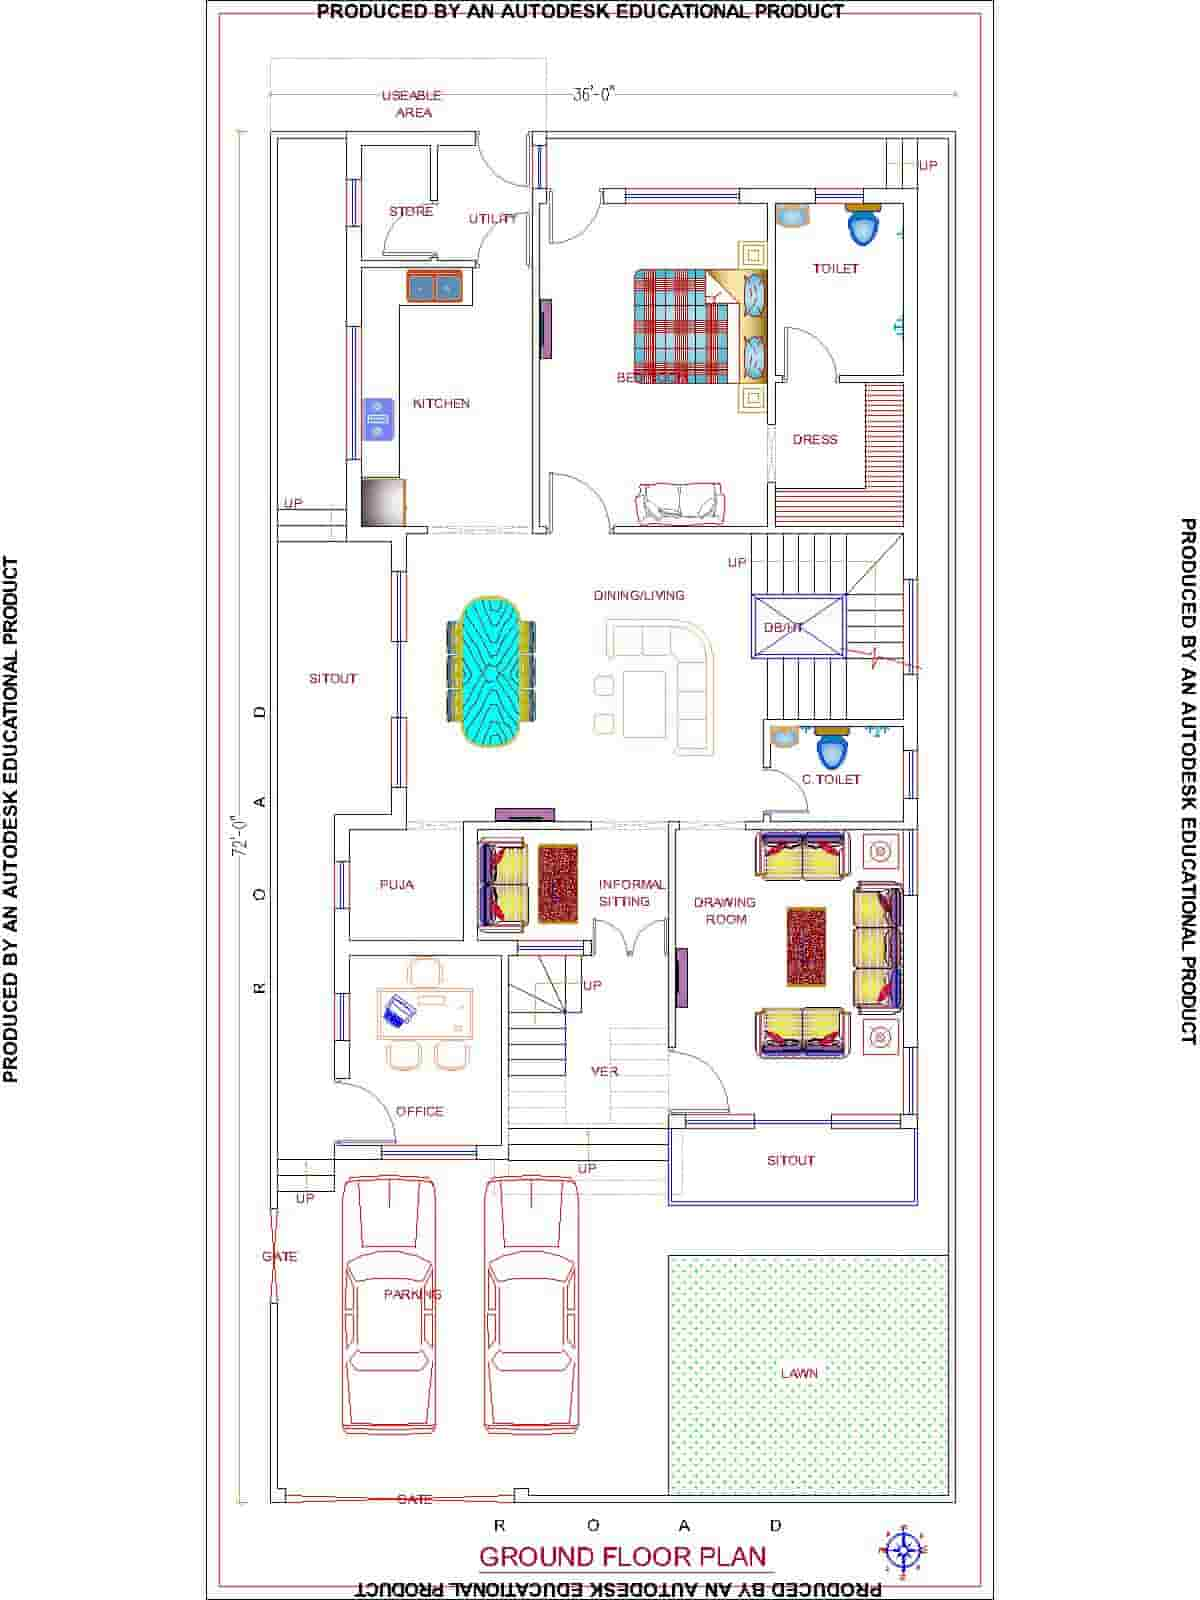 gallrey5f2a85bdd0364R-2601-GROUND_FLOOR_PLAN.jpg